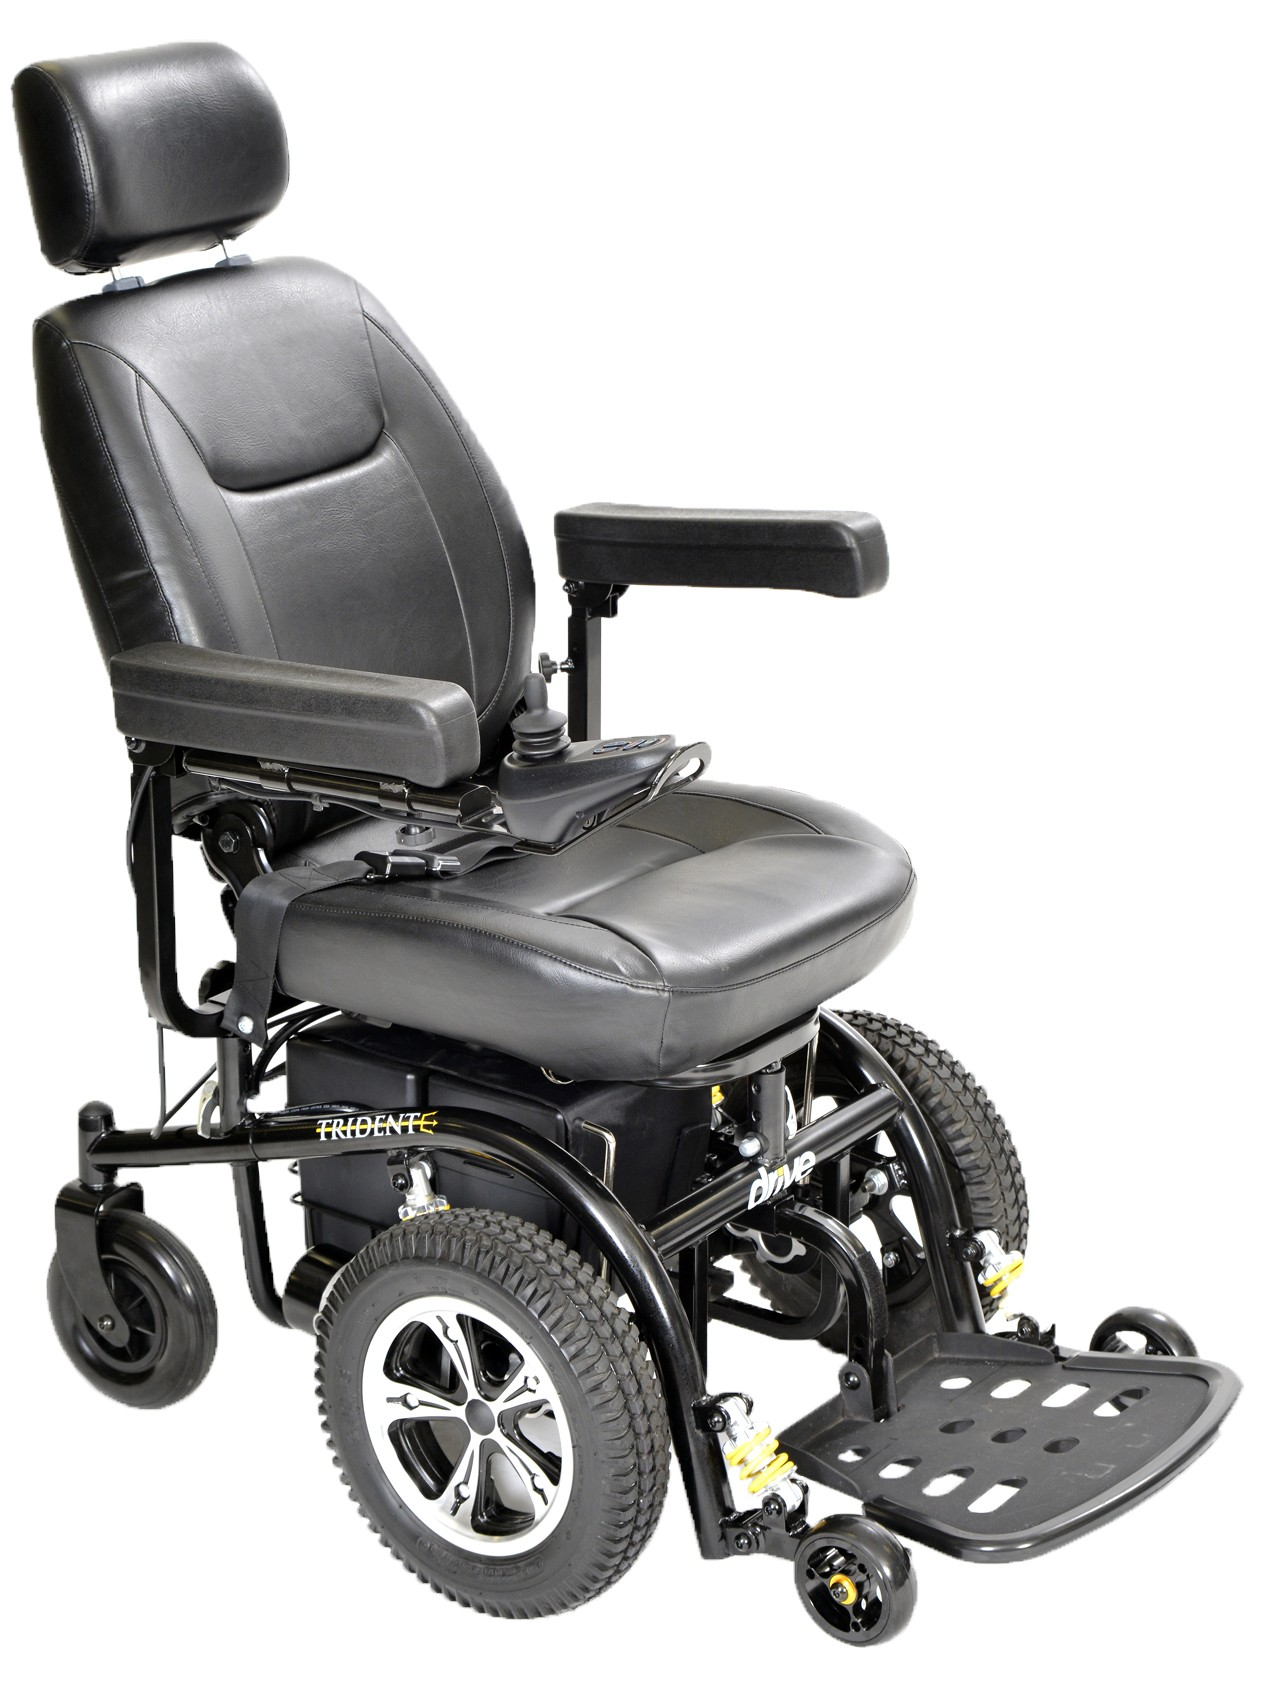 Chair Repair Parts Mobility Scooter Repair Company In Central Florida